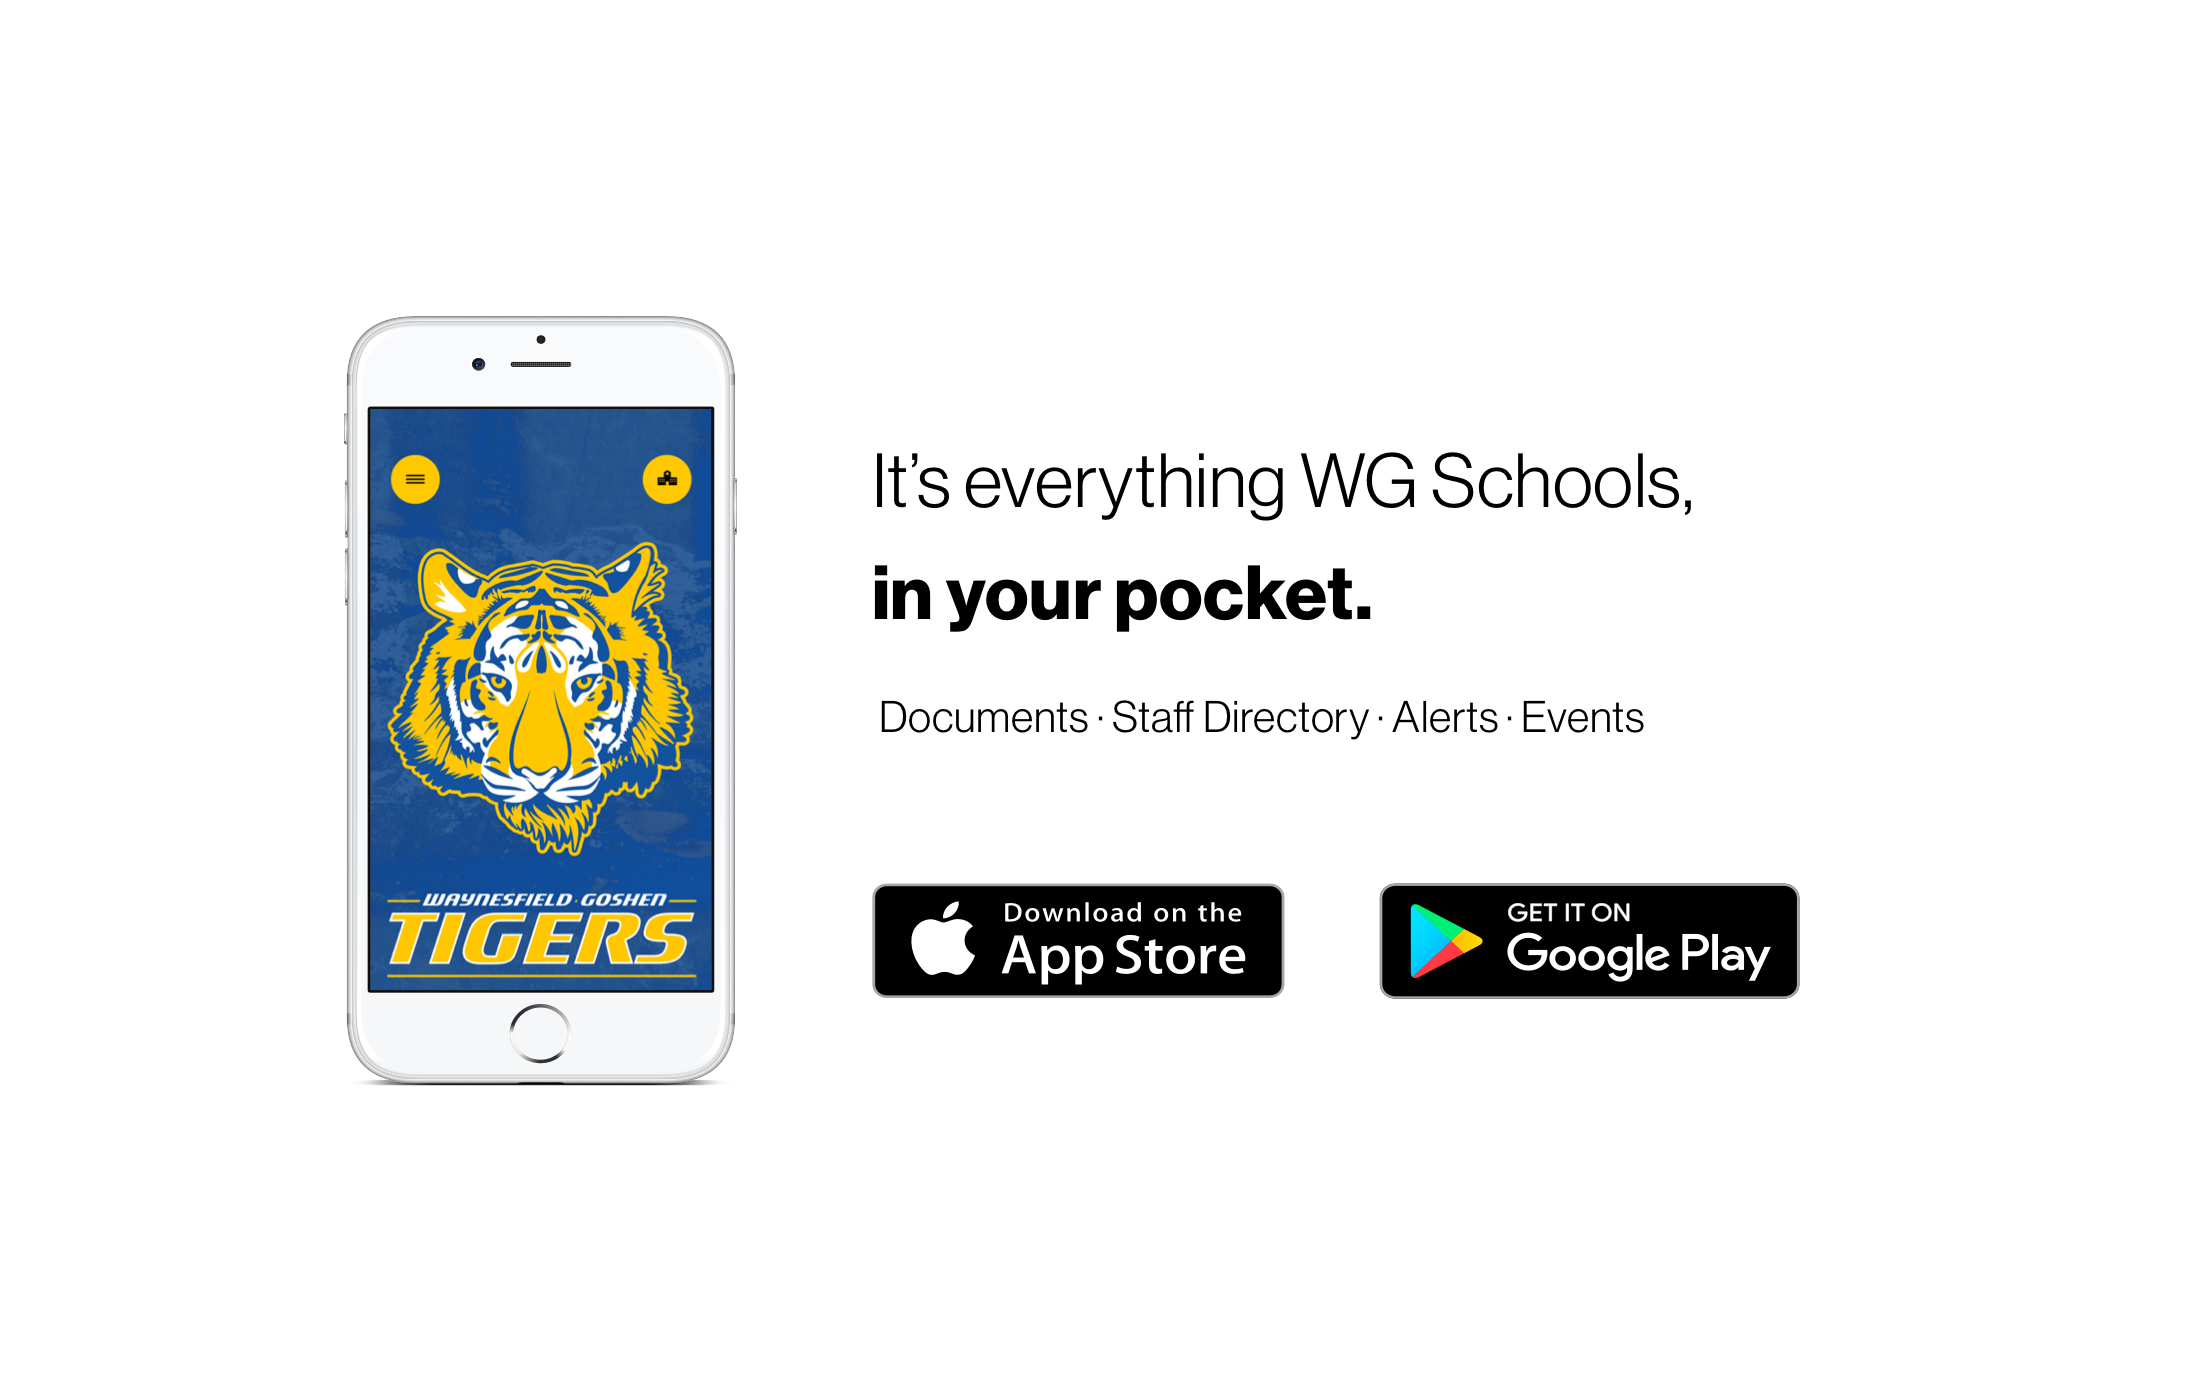 It's everything WG Schools, in your pocket.